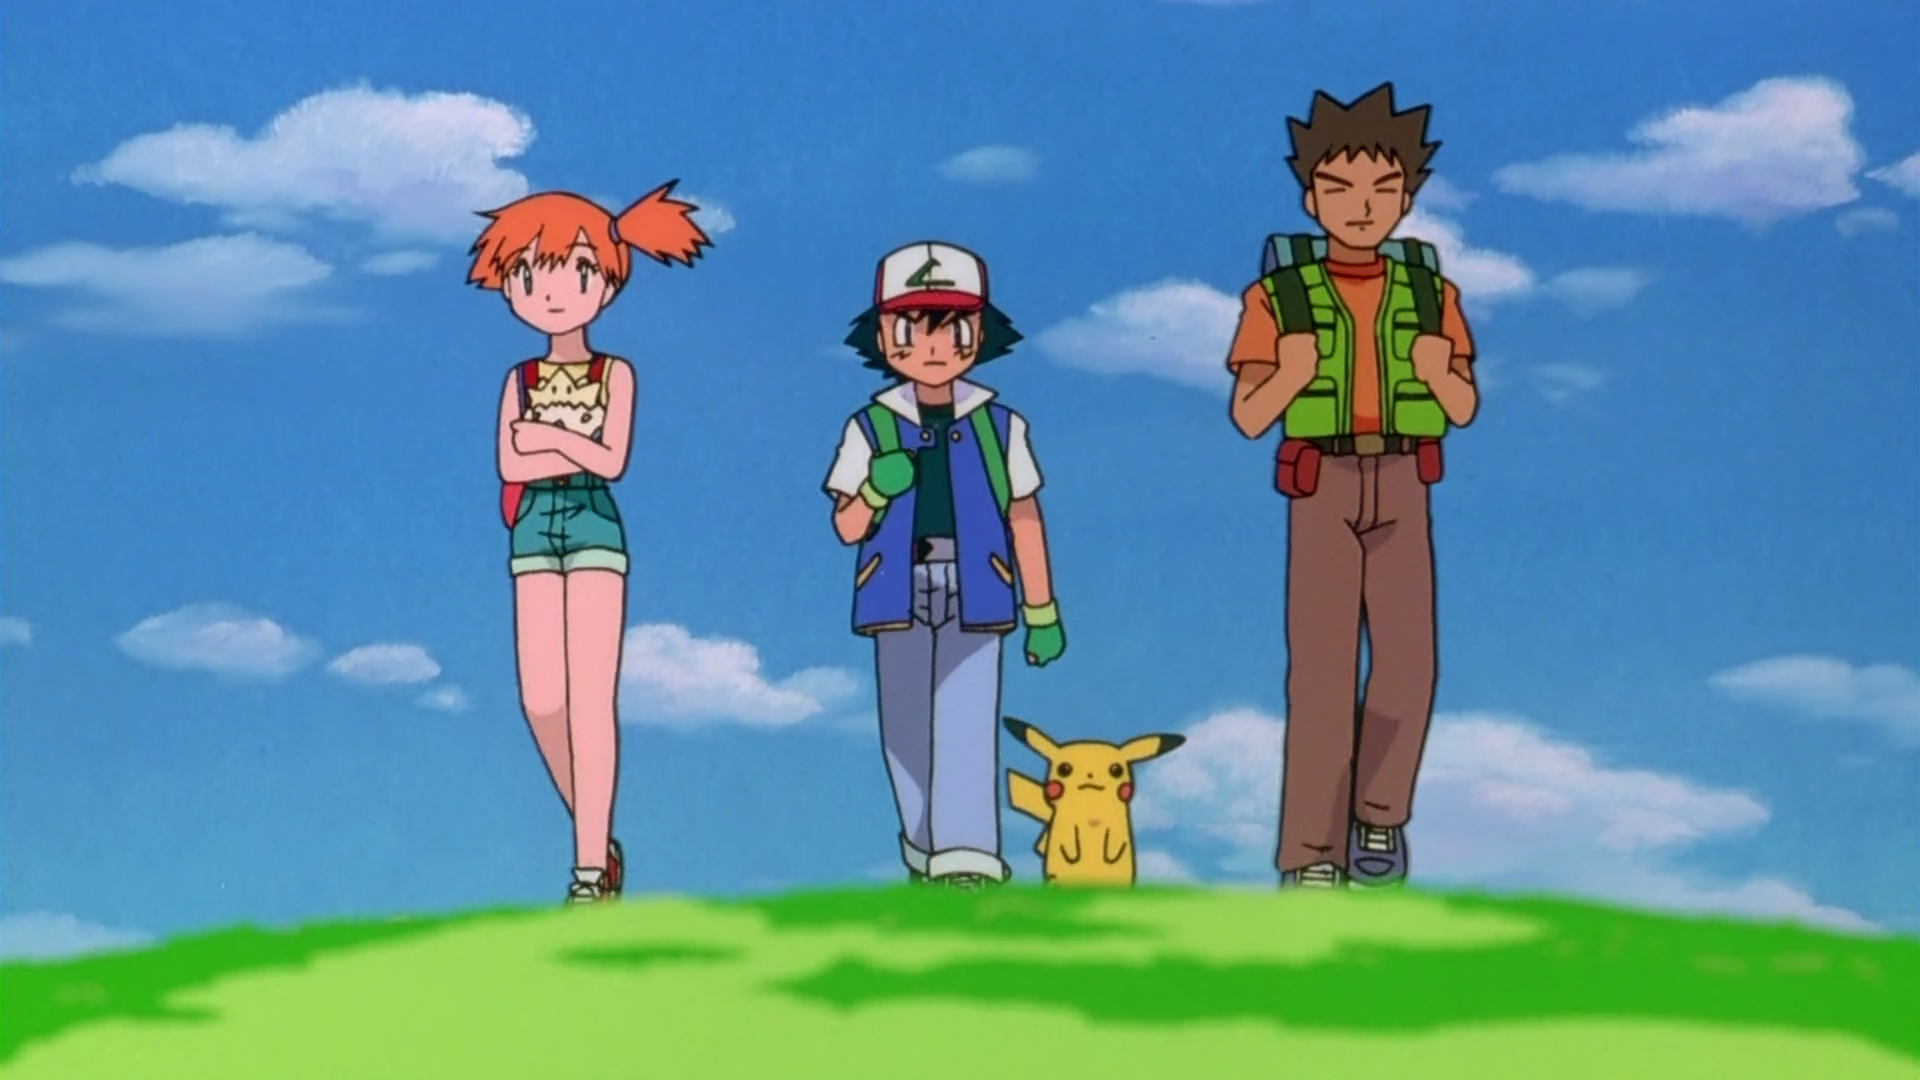 how to download pokemon ash gray on phone